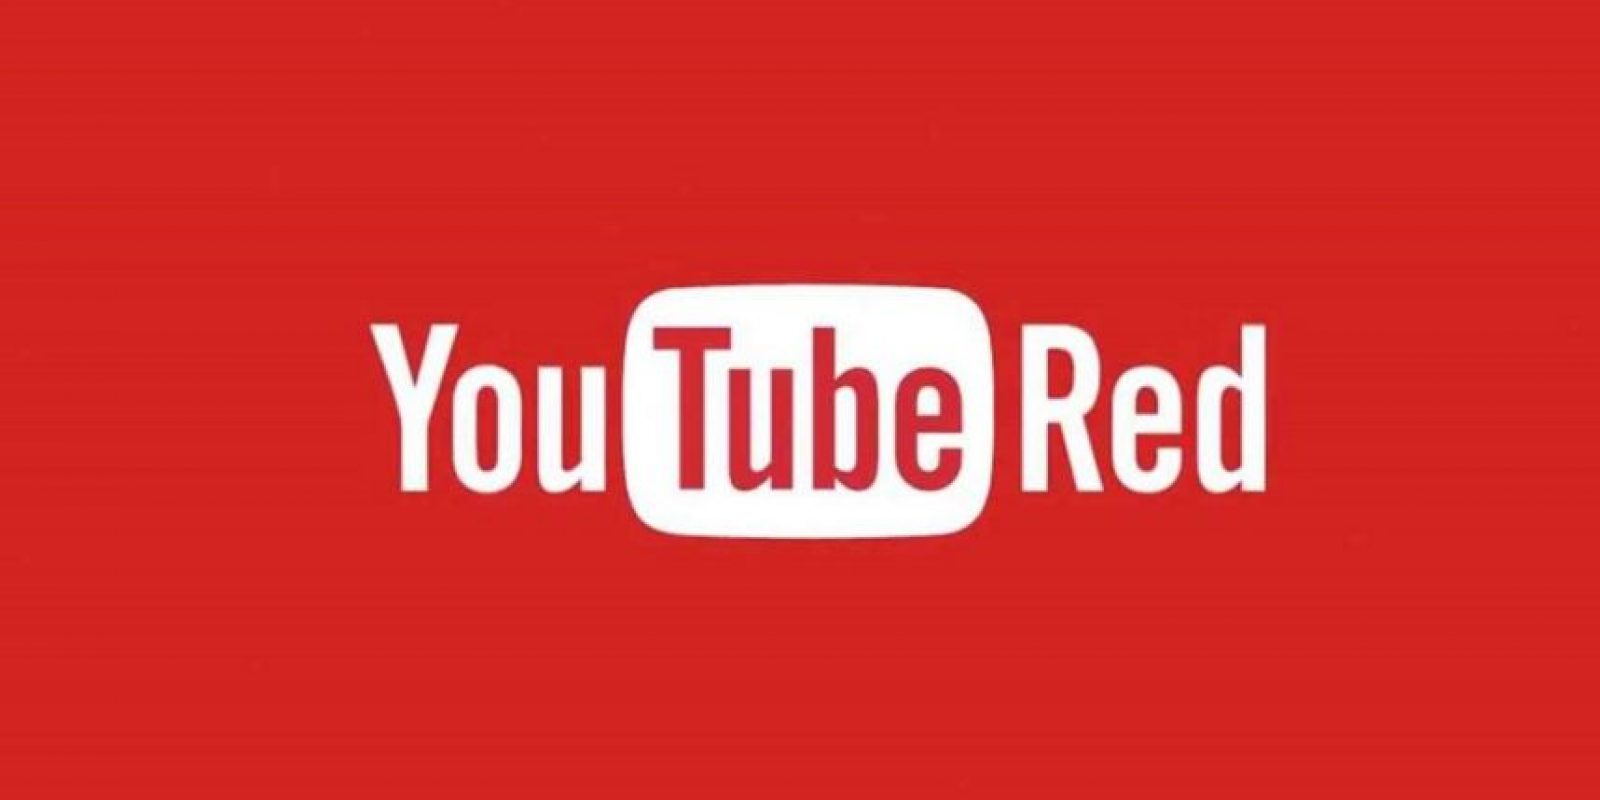 YouTube Red ya está disponible en los Estados Unidos. Foto: Vía YouTube